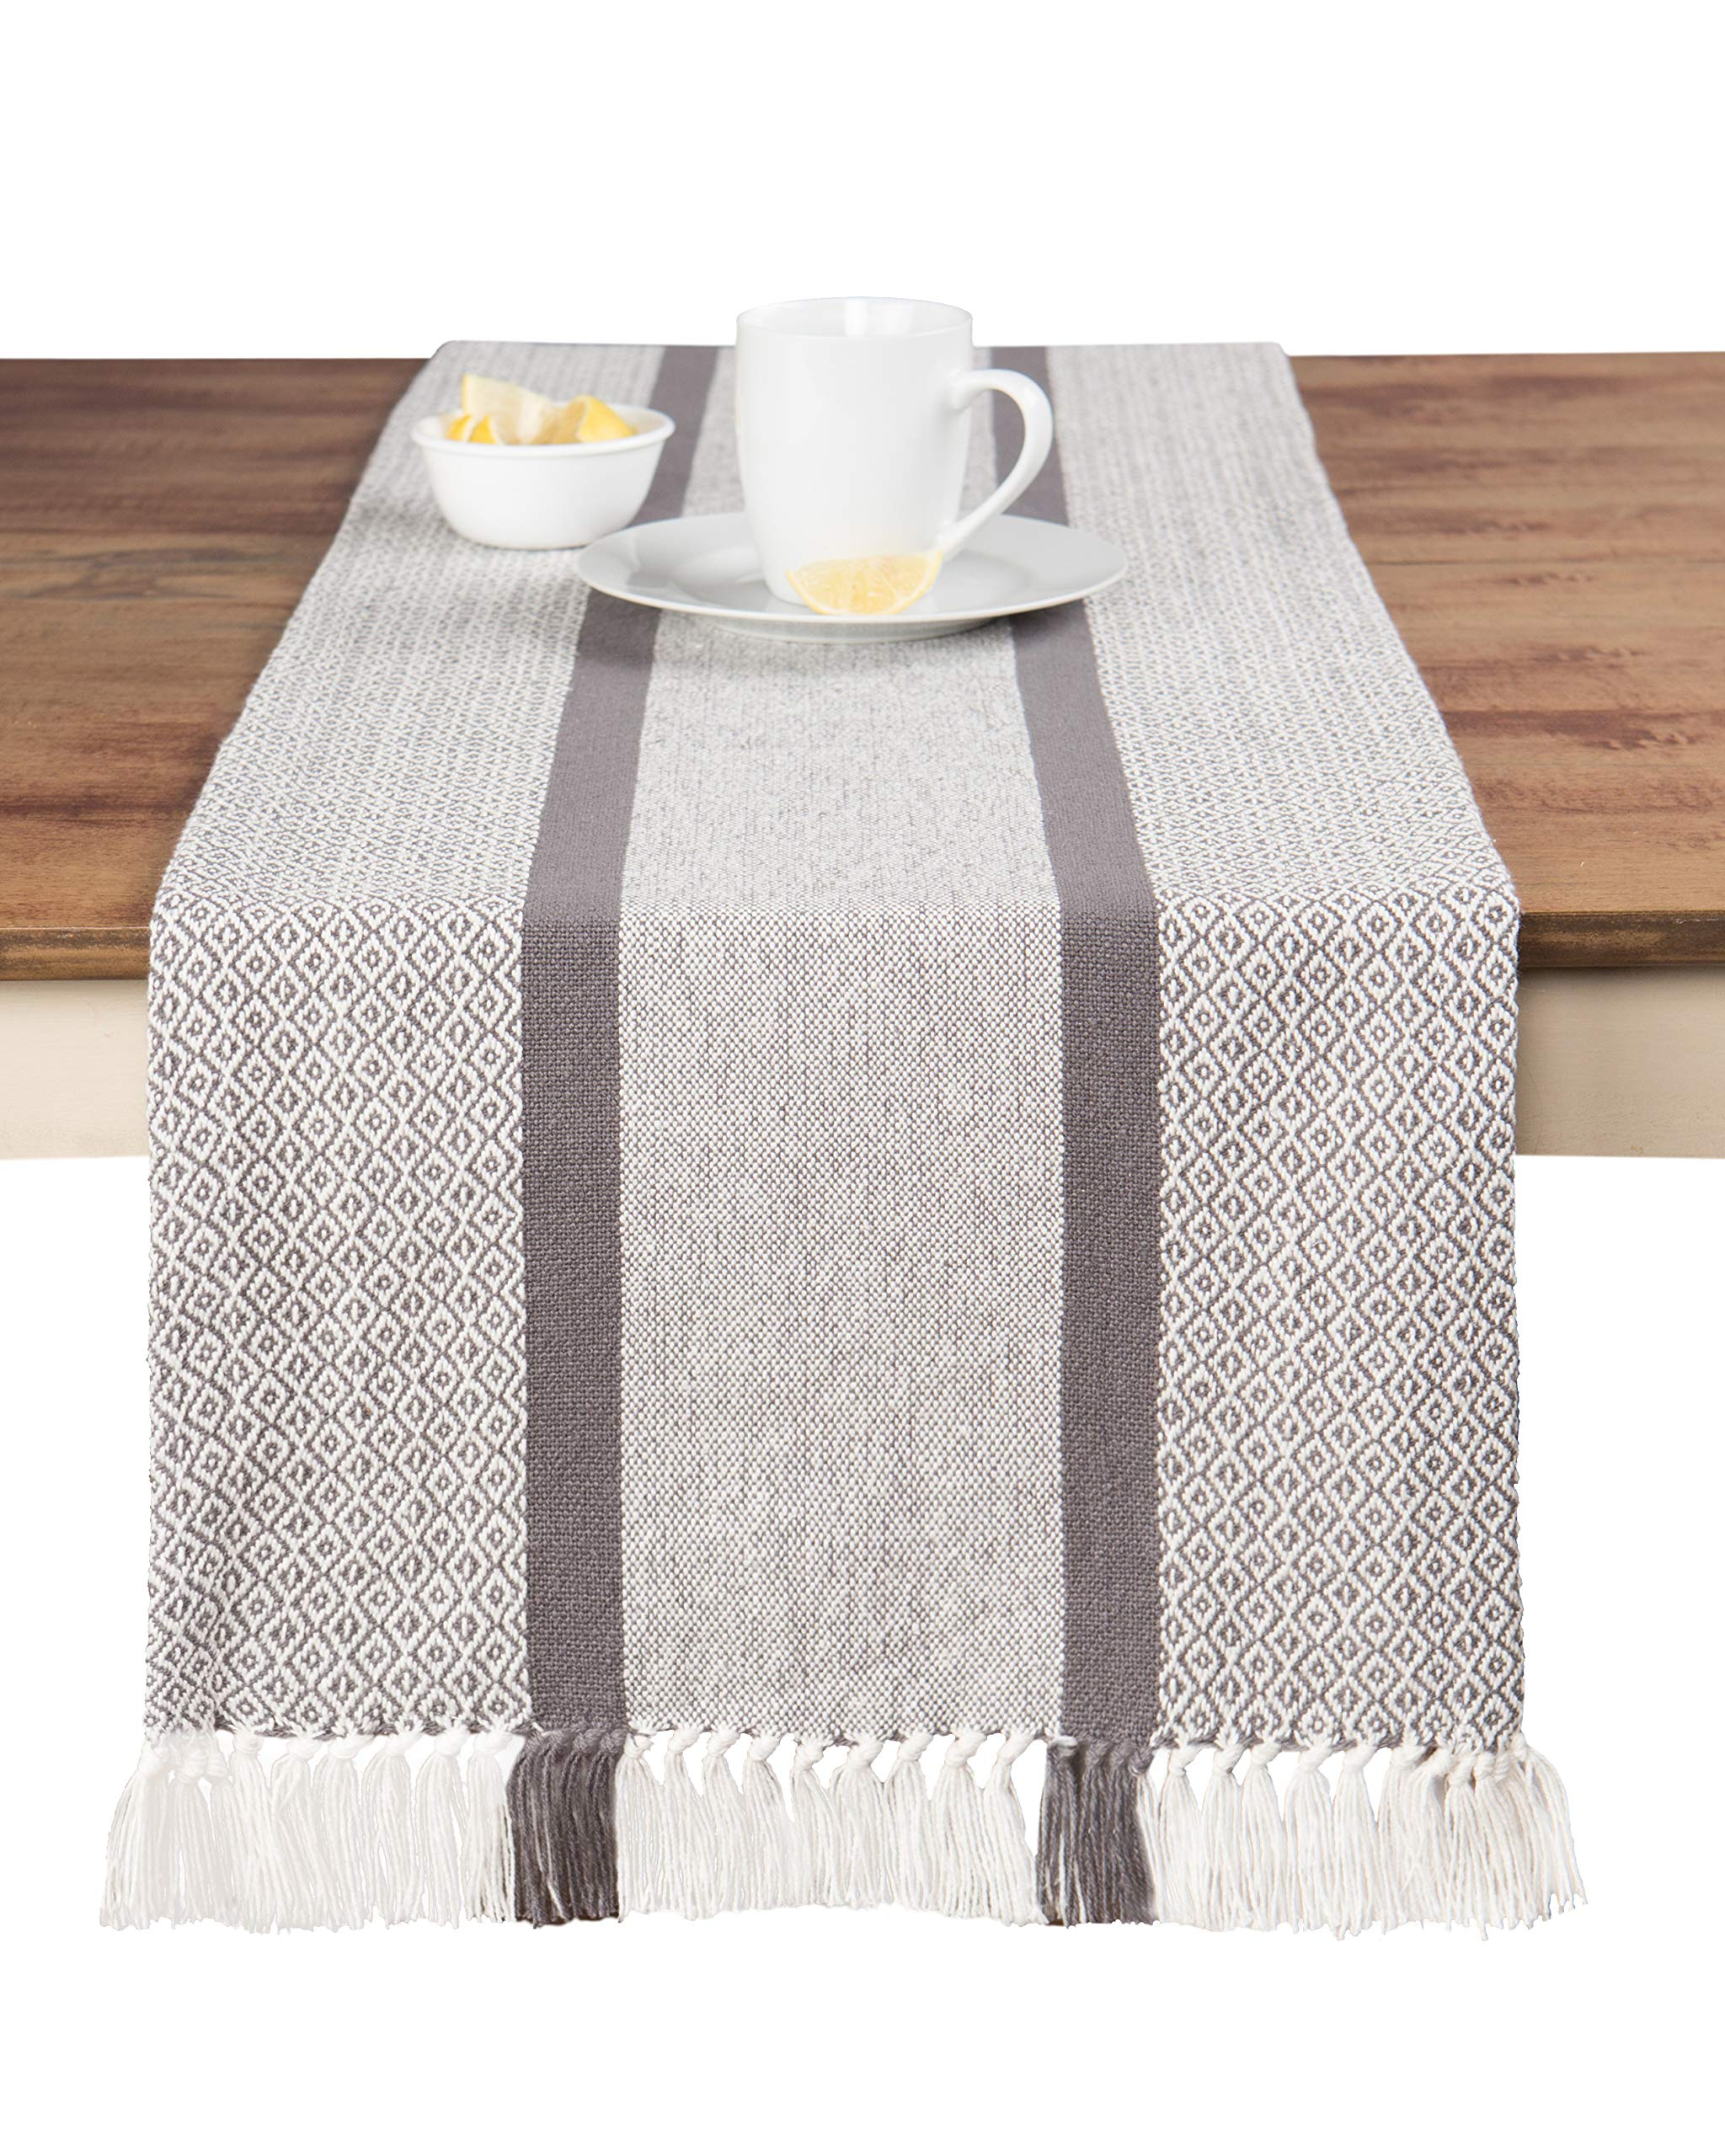 Sticky Toffee Cotton Woven Table Runner with Fringe, Traditional Diamond, Gray, 14 in x 72 in